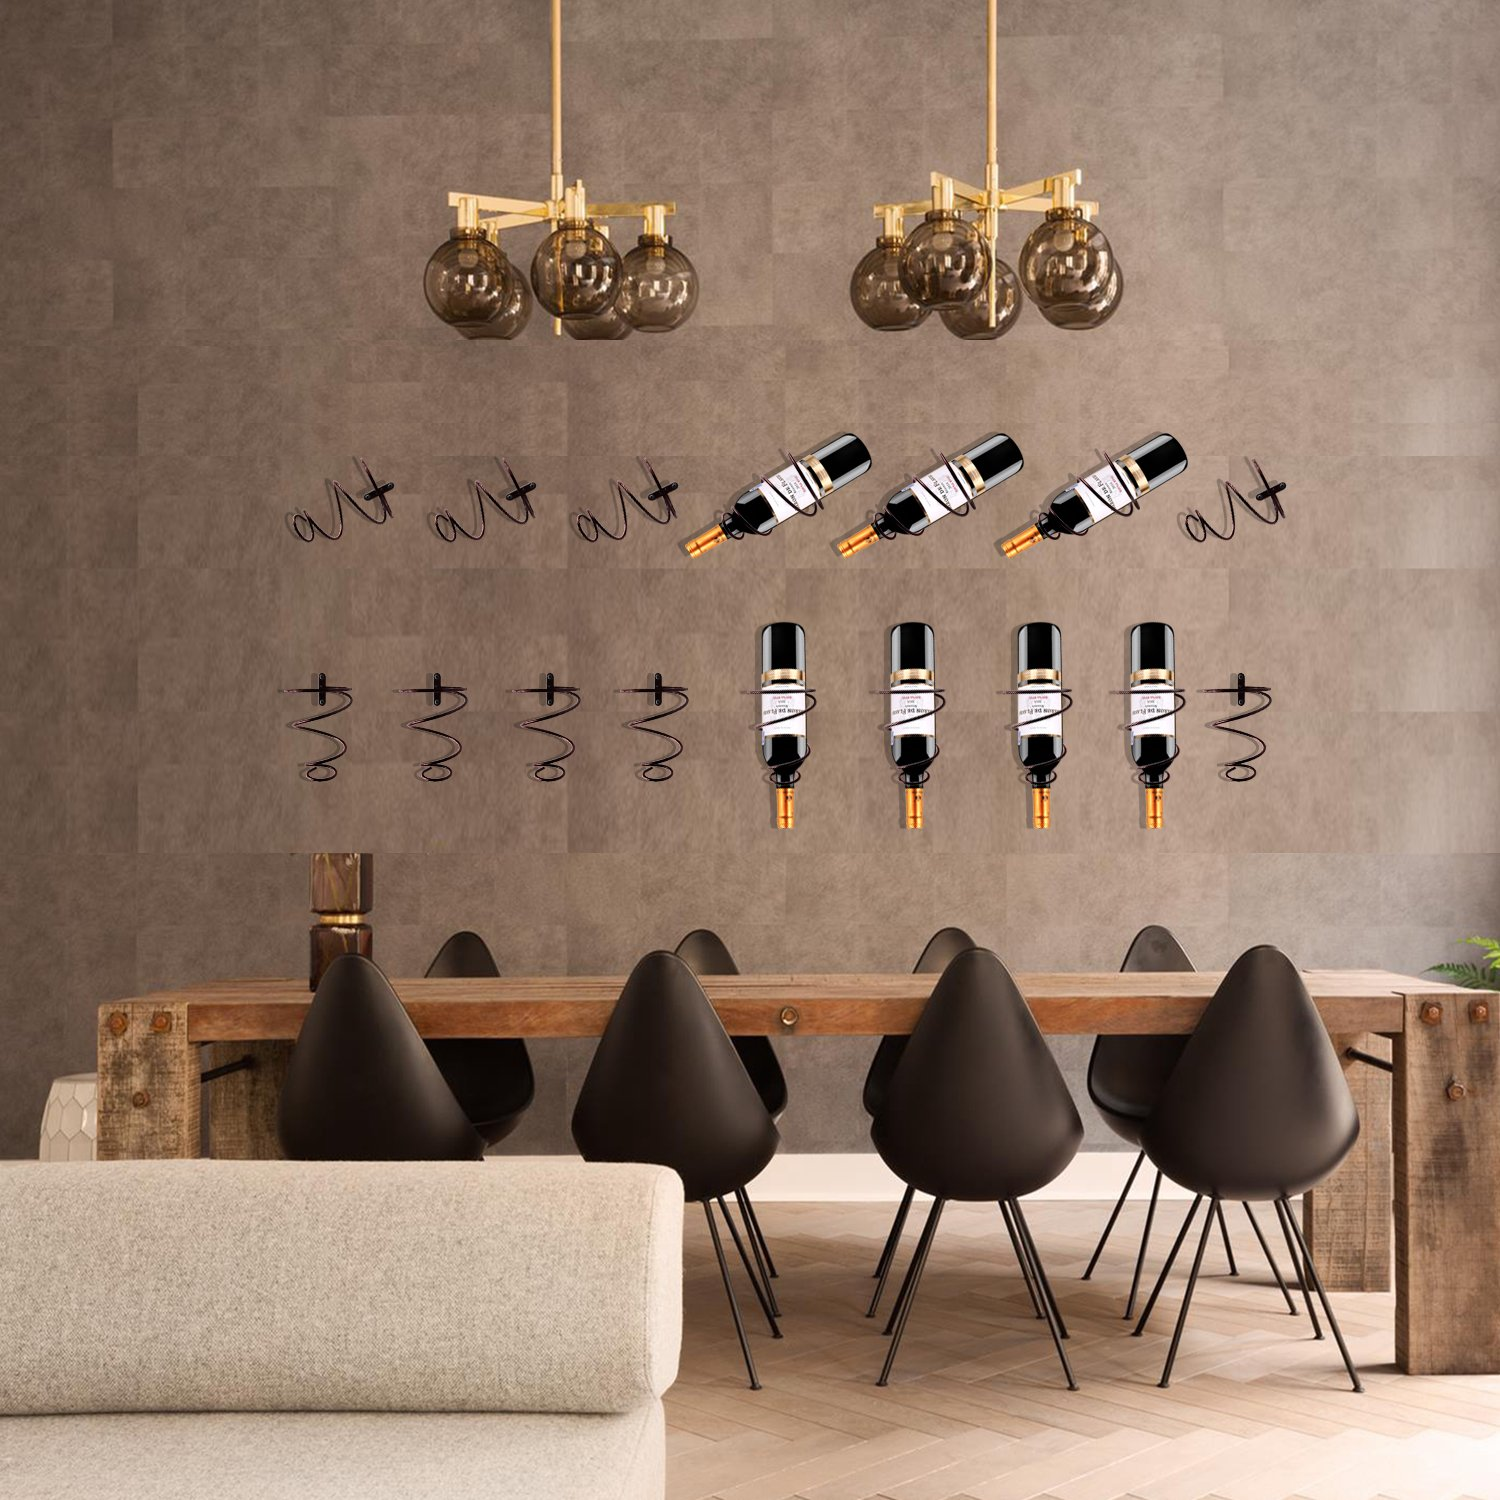 Hin Plus 3 Pack Metal Wine Rack Wall Mounted Wine Bottle Holder – Wall Decor Art – Included Mounting Screws and Anchors (Style B) by Hin Plus (Image #7)